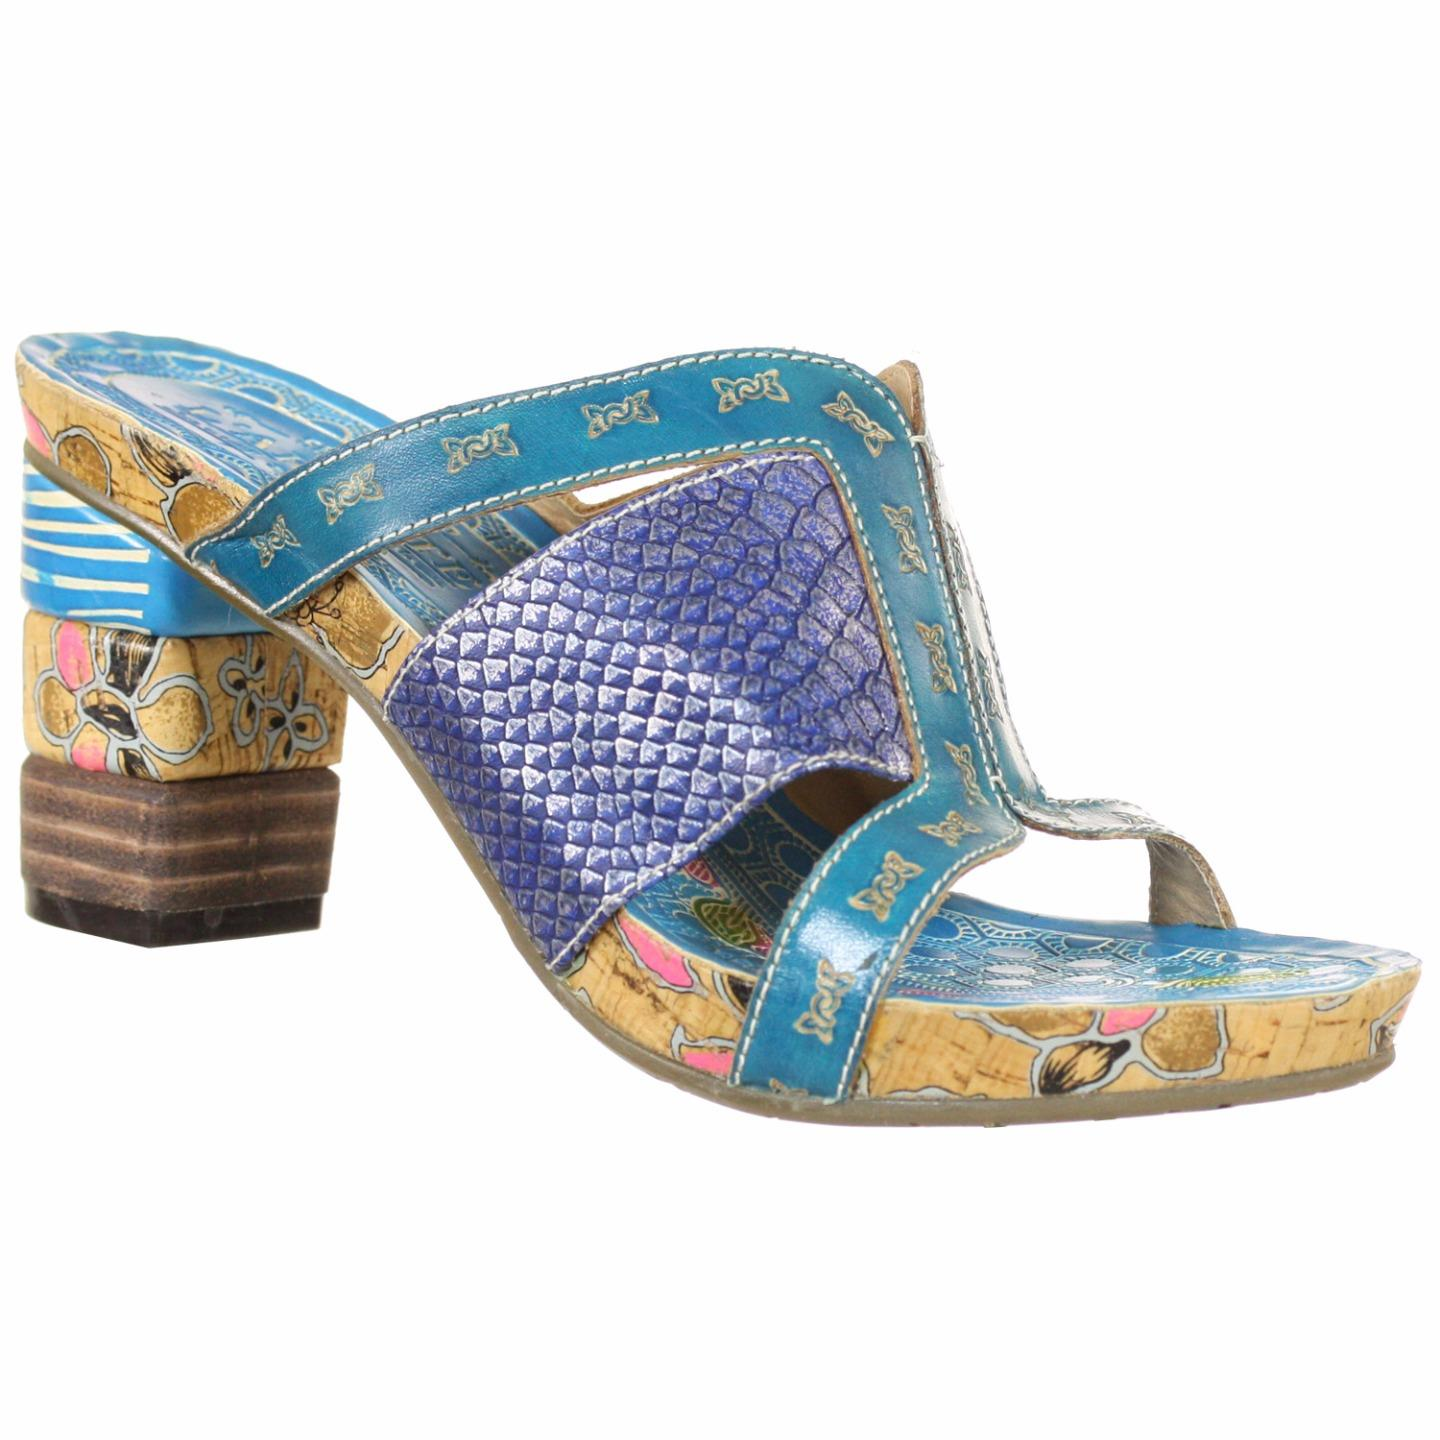 Bryn Spring Step L'Artiste Collection Women's Sandals Turquoise Multi EU 37 US 7 by Spring Step